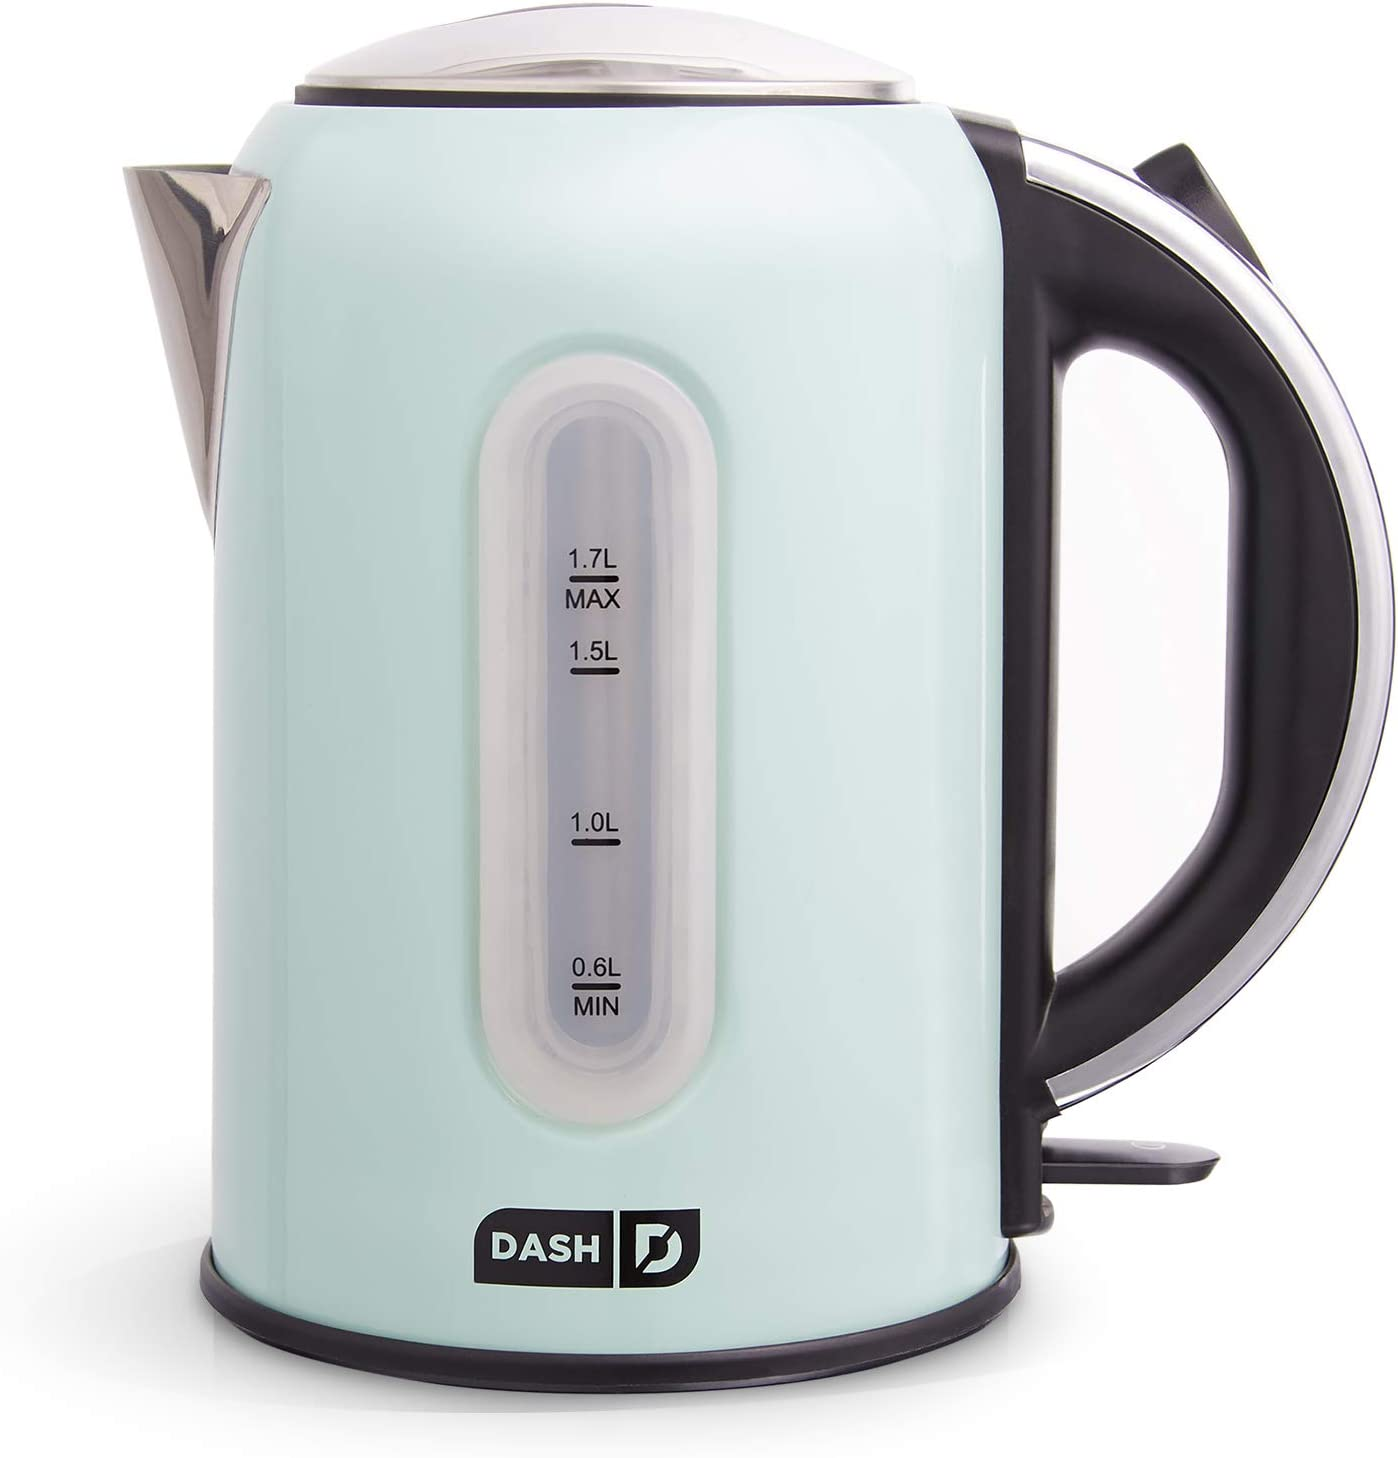 DASH DEK001AQ Electric Kettle + Water Heater with Rapid Boil, Cool Touch Handle, Cordless Carafe, No Drip Spout + Auto Shut Off For Coffee, Tea, Espresso & More, 57 oz/ 1.7 L - Aqua